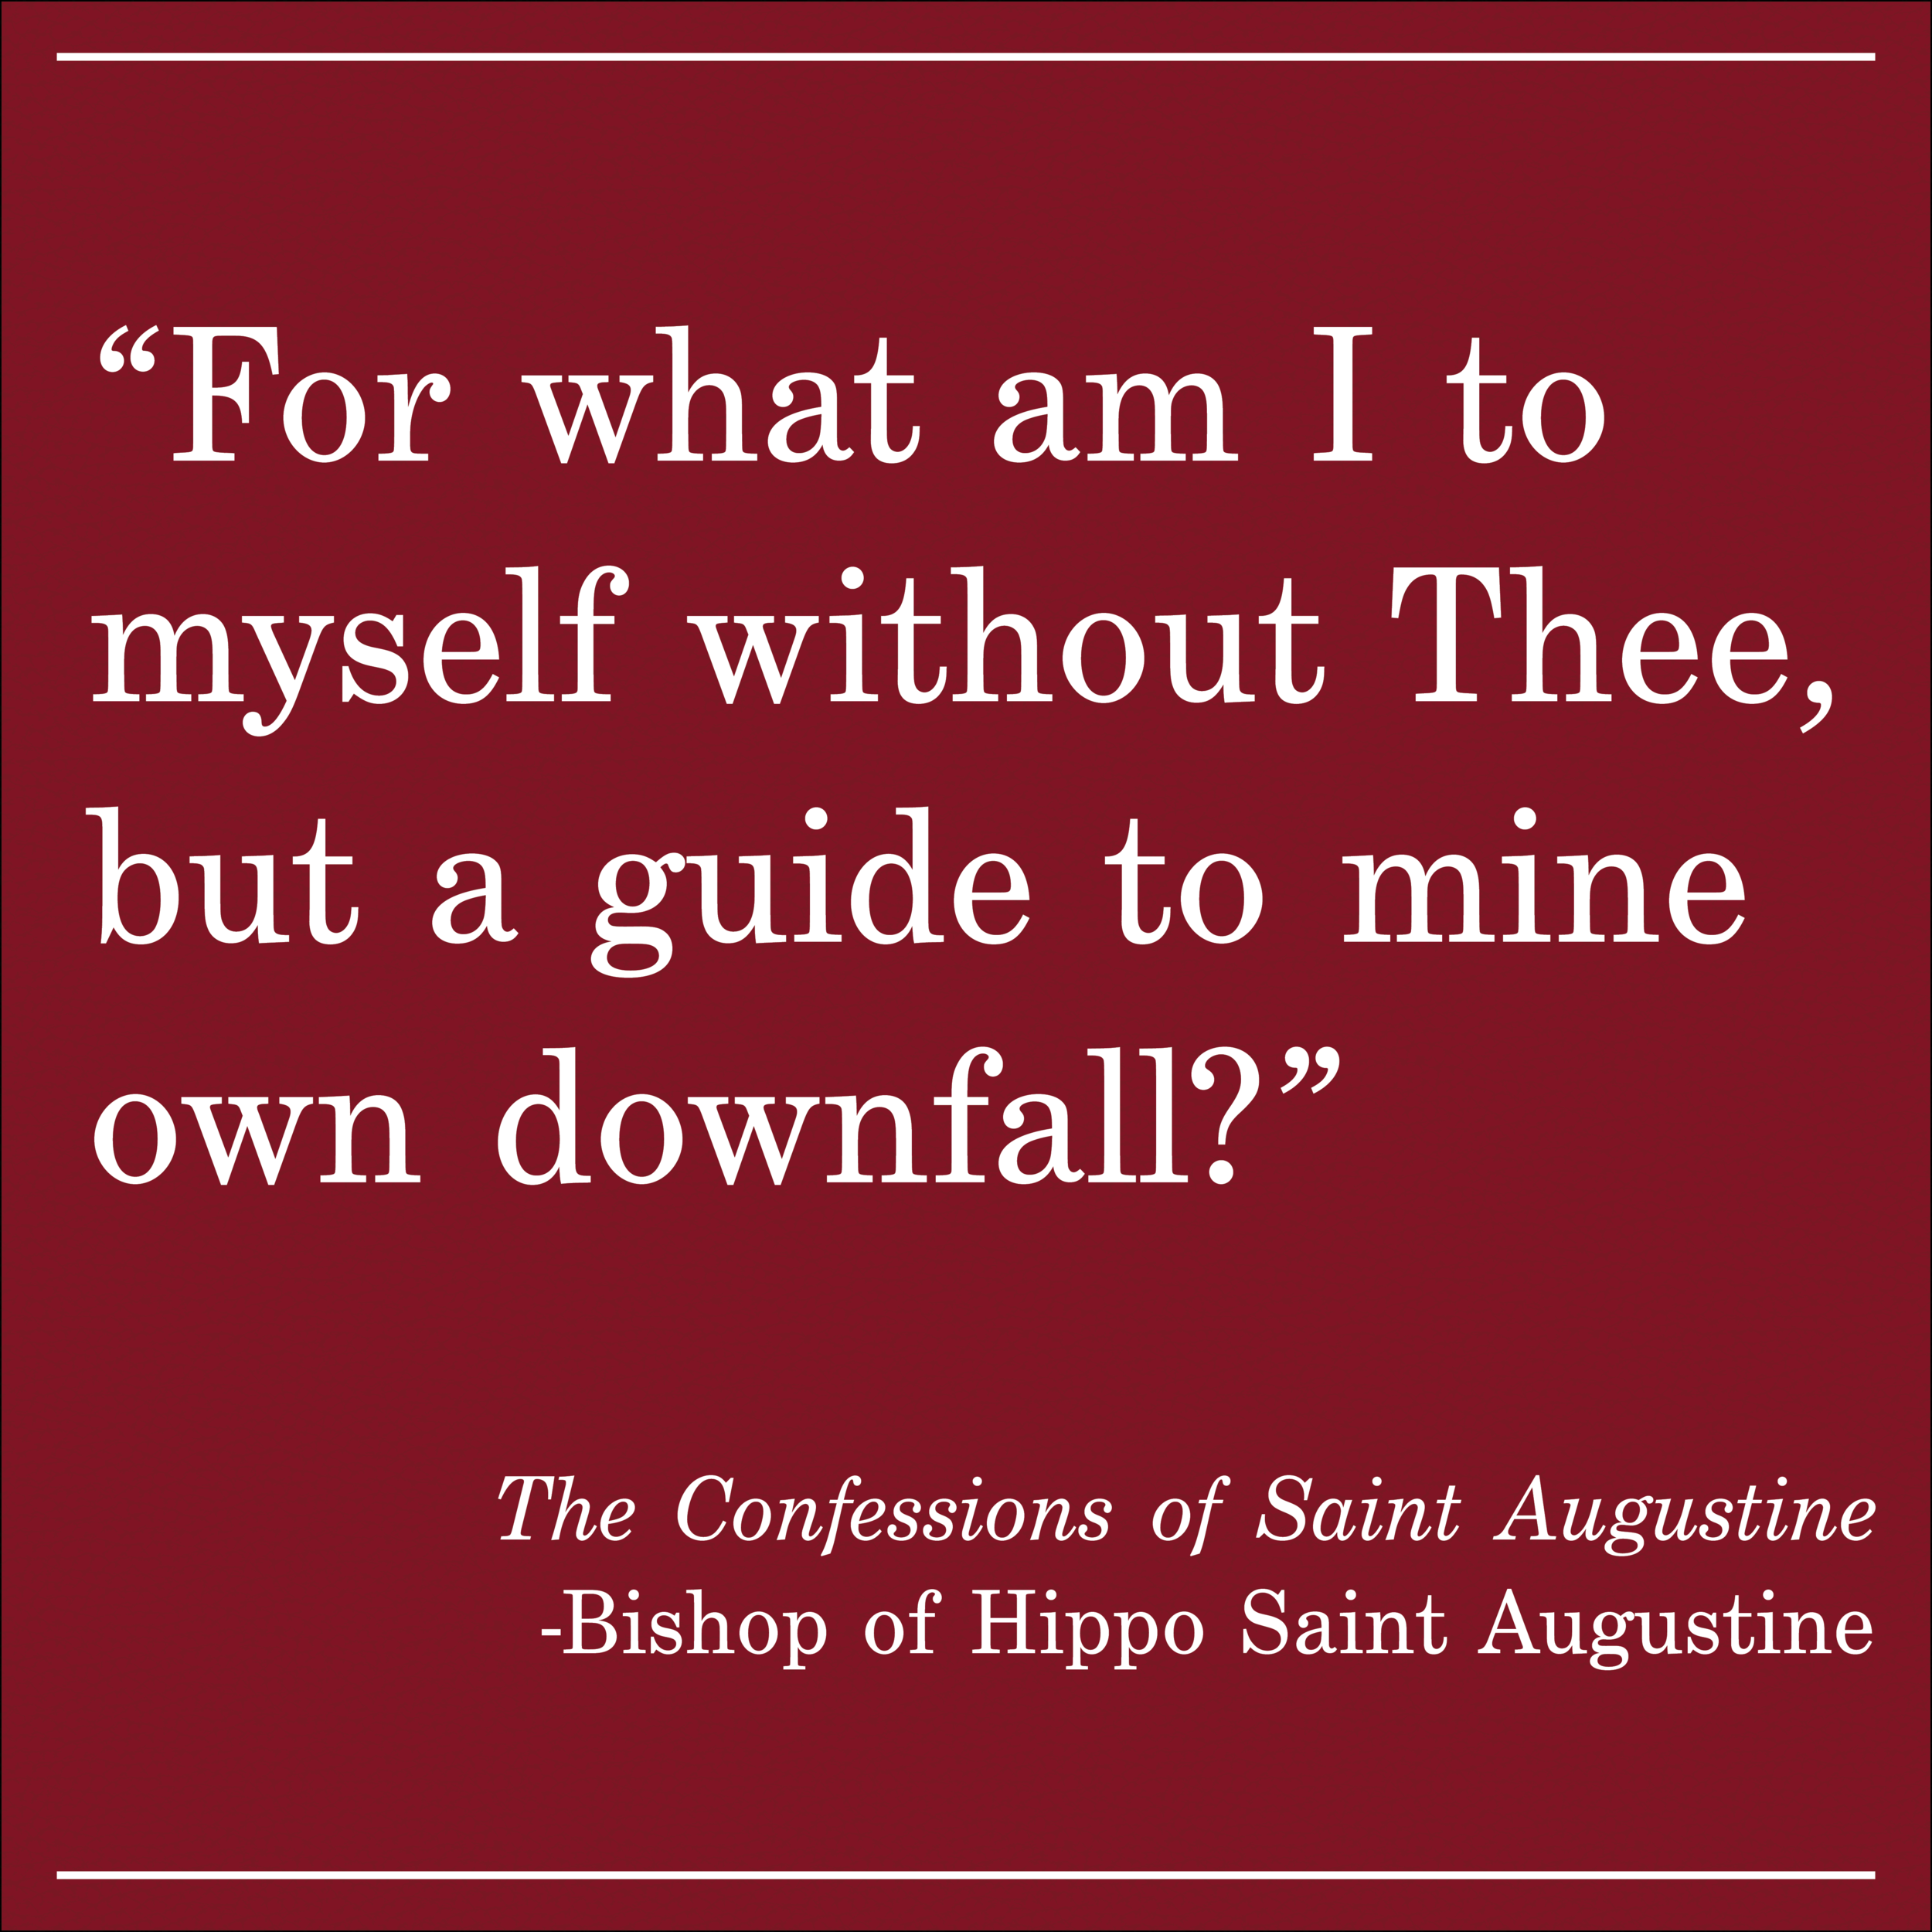 Daily Quote The Confessions of Saint Augustine